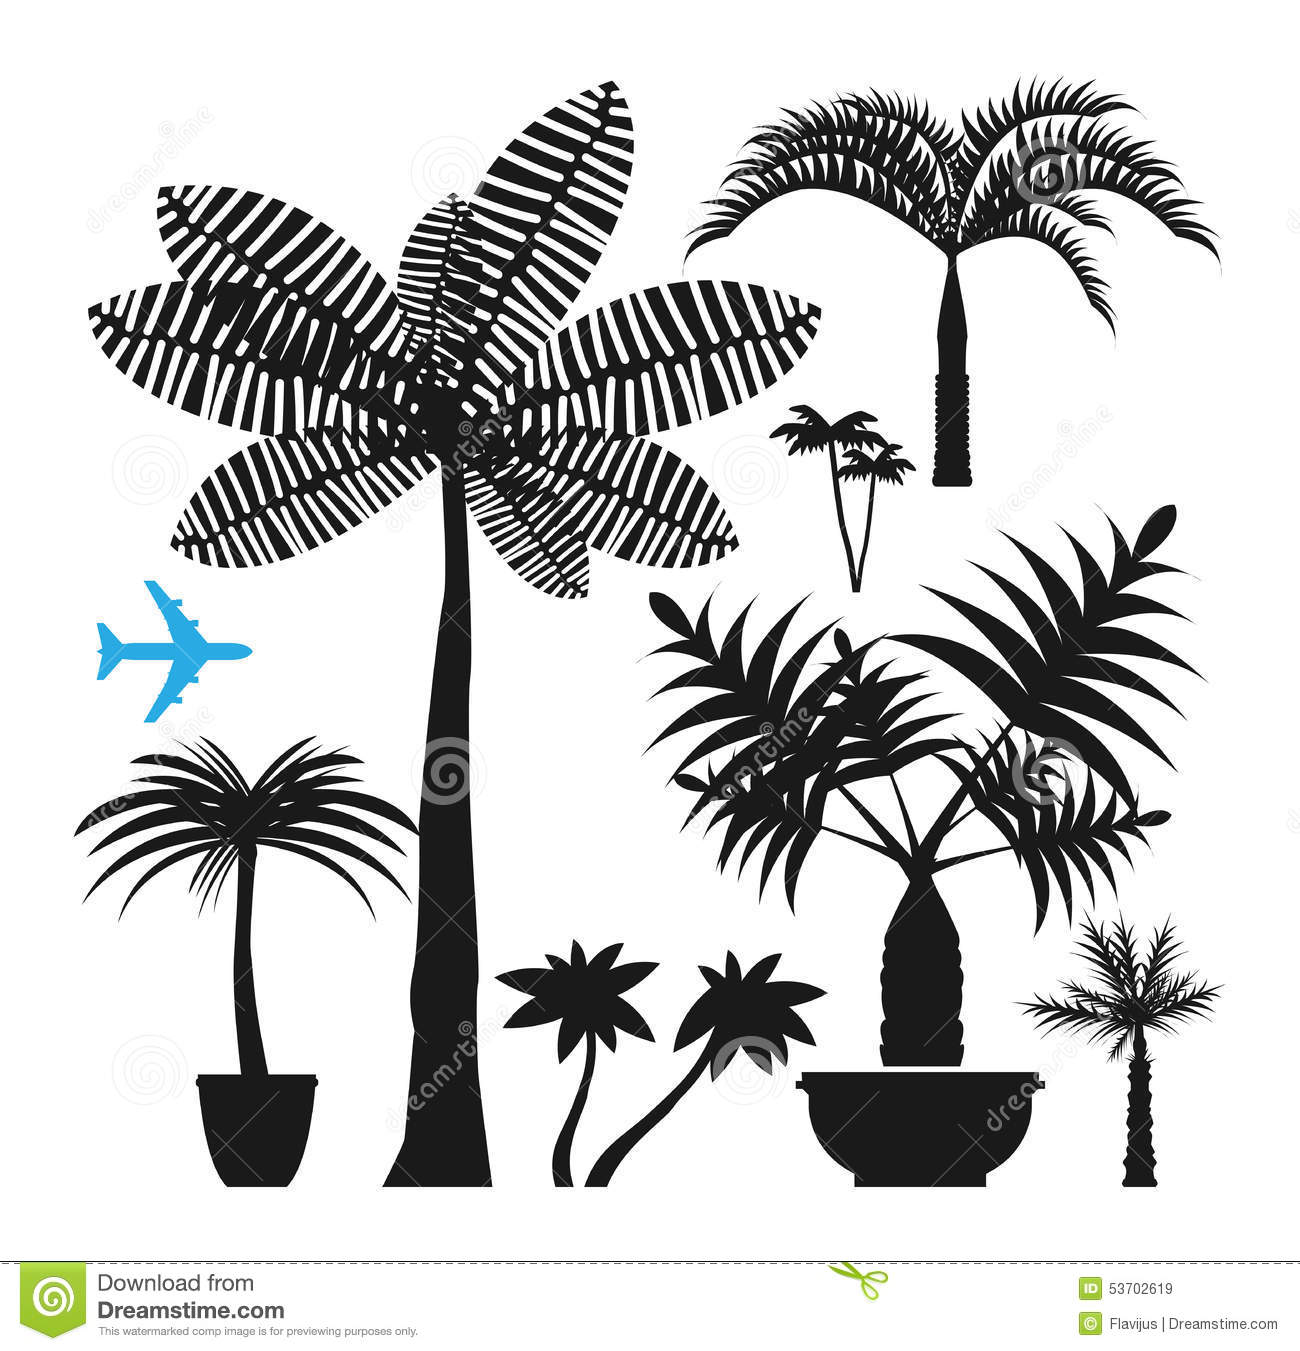 Palm silhouettes stock vector. Illustration of botany